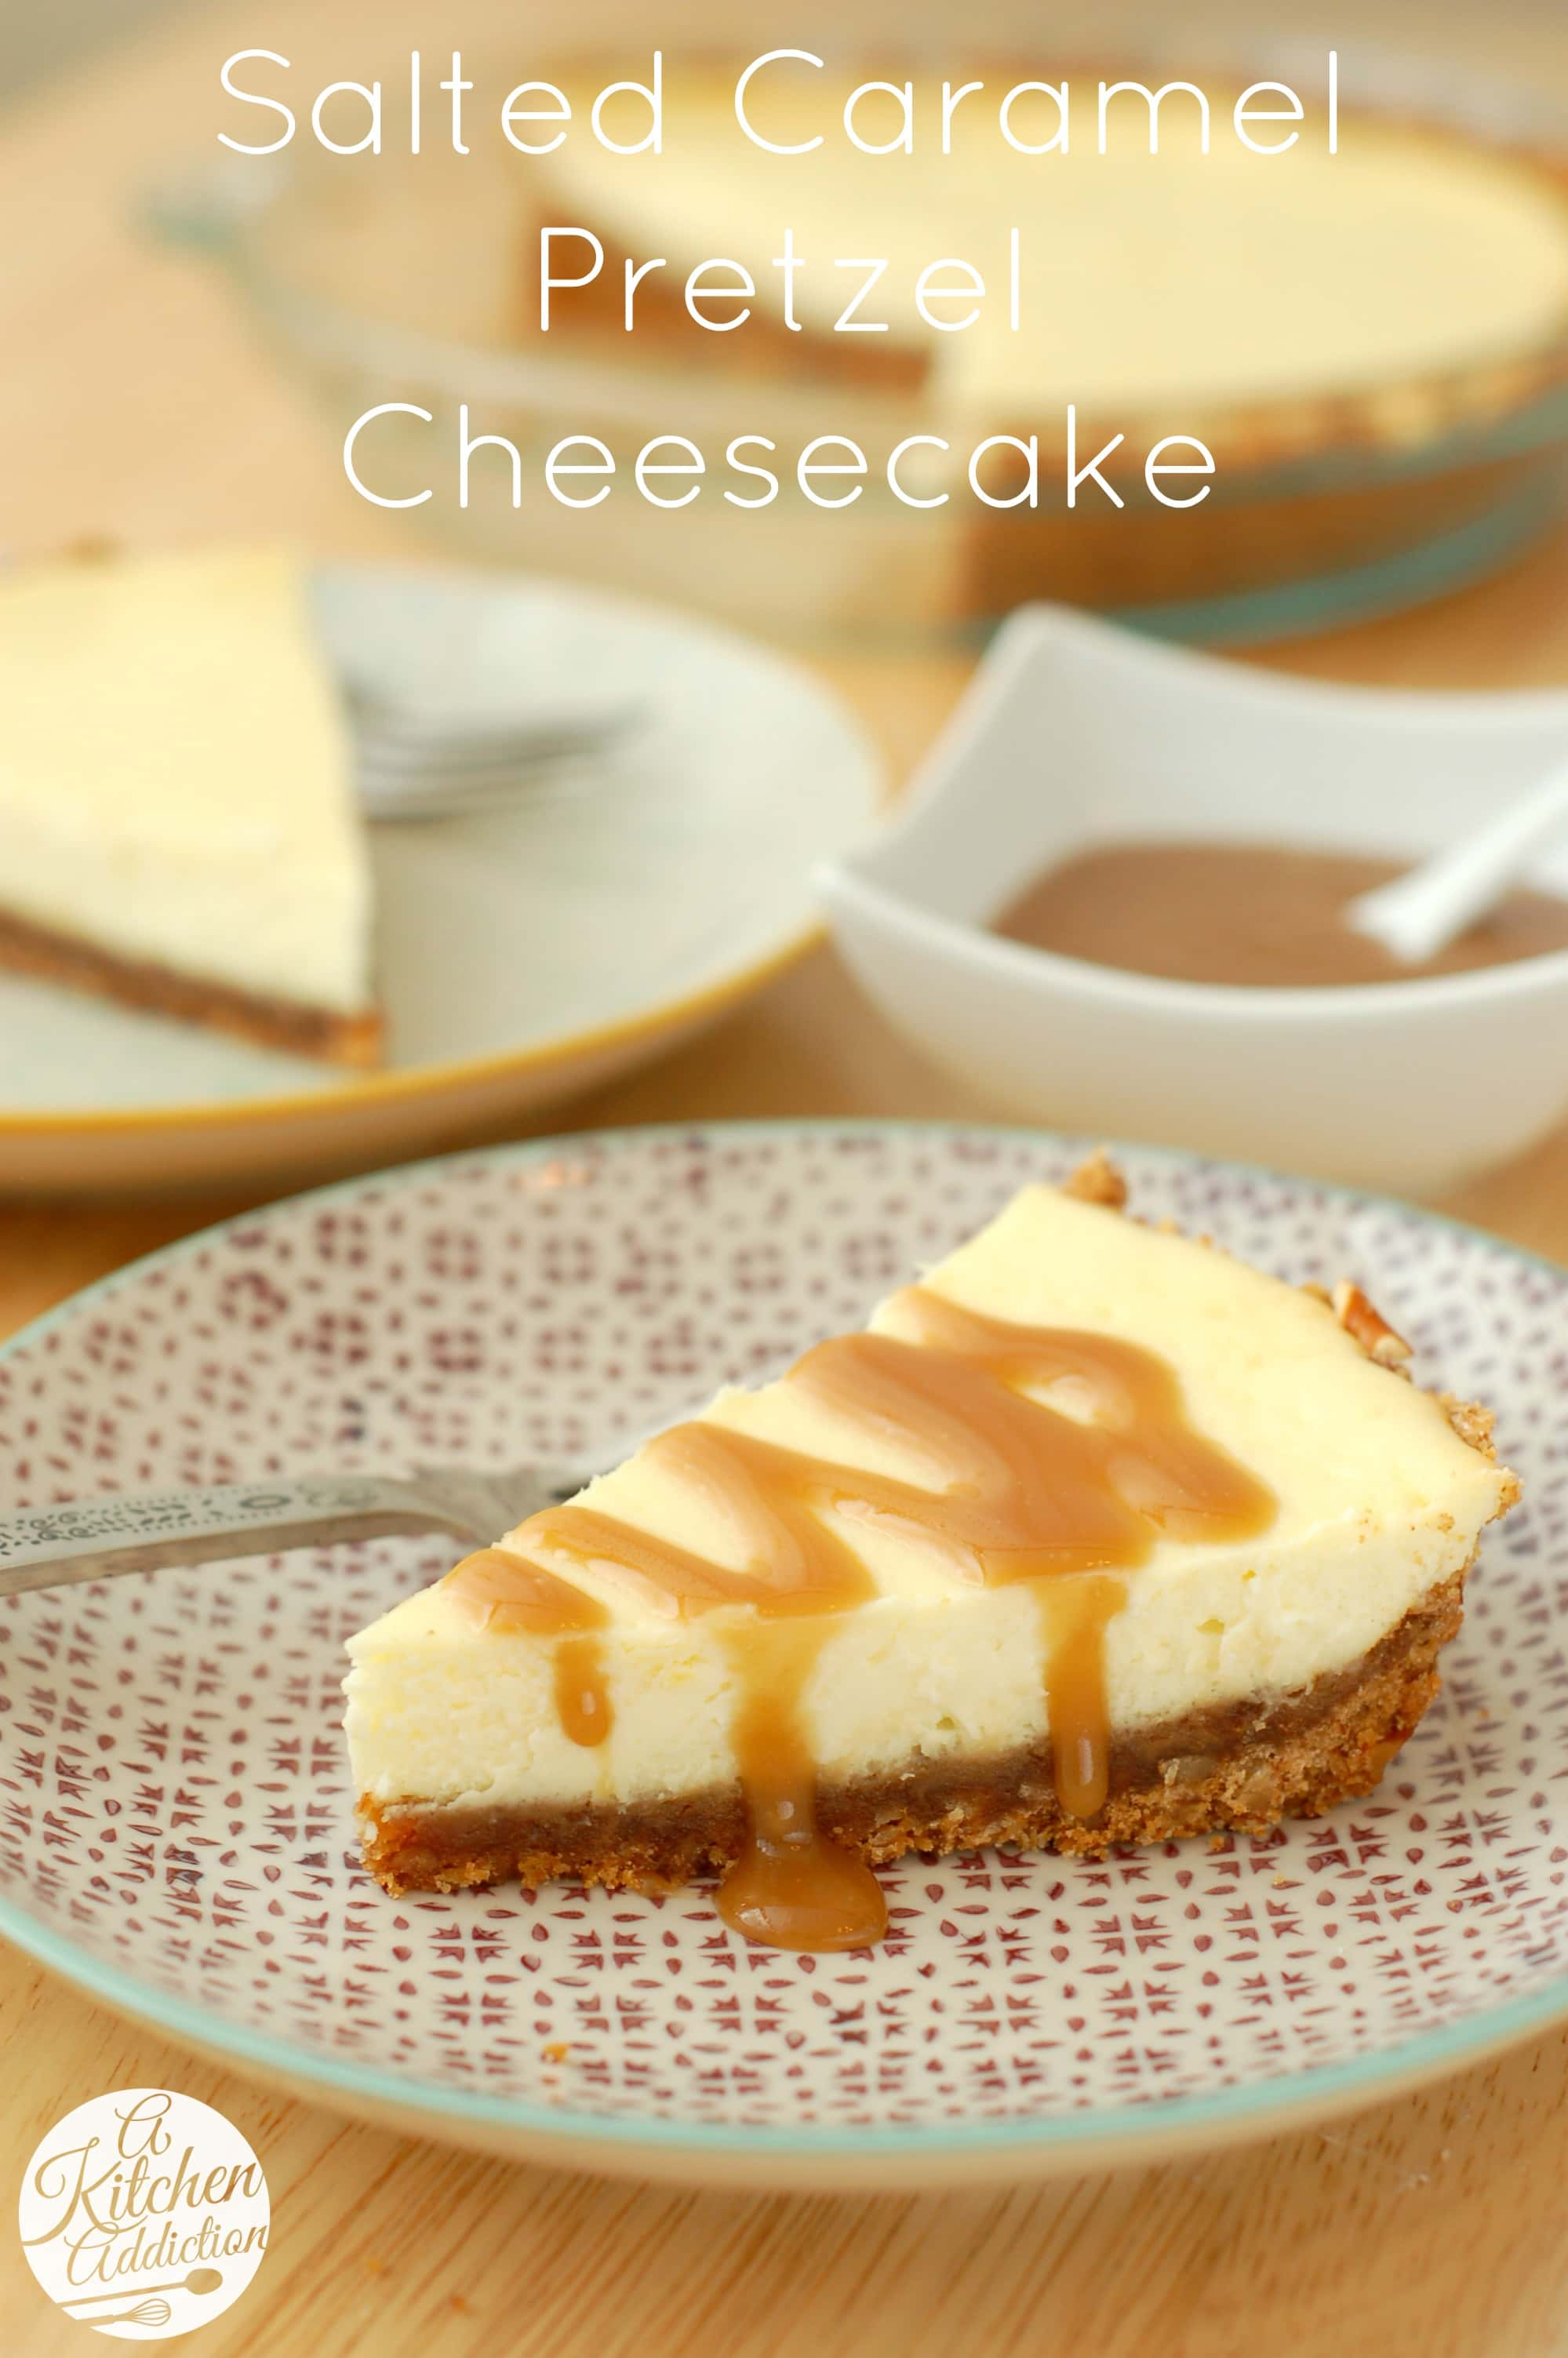 Salted caramel pretzel cheesecake a kitchen addiction for A kitchen addiction